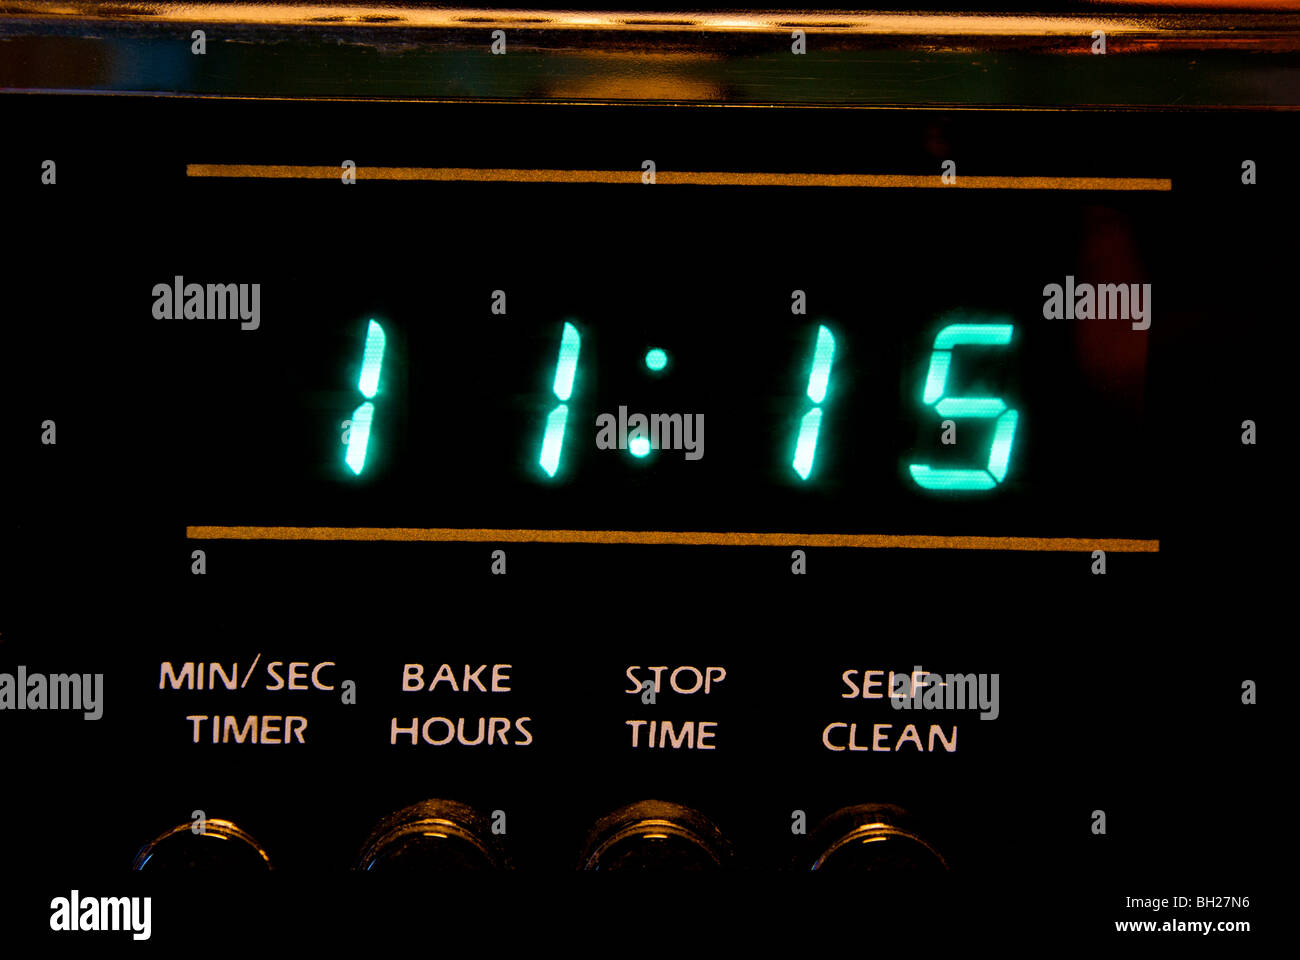 Oven Timer Stock Photos Amp Oven Timer Stock Images Alamy